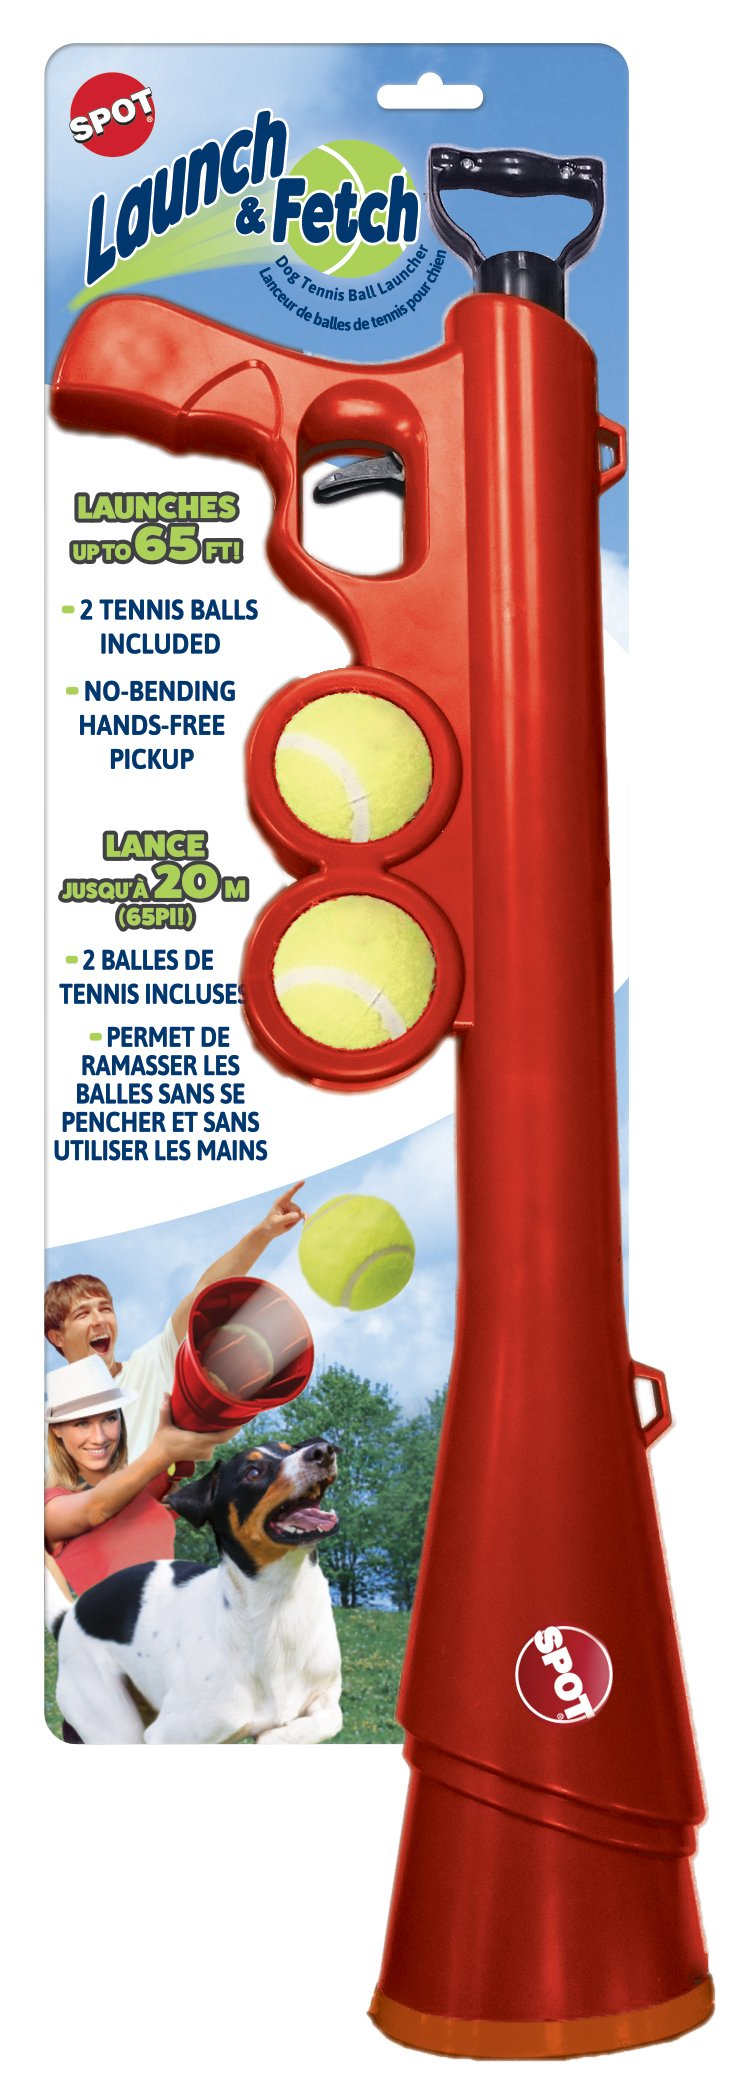 Ethical Pets 54299 Spot Launch & Fetch Tennis Ball Launcher Interactive Dog Toy, 24''